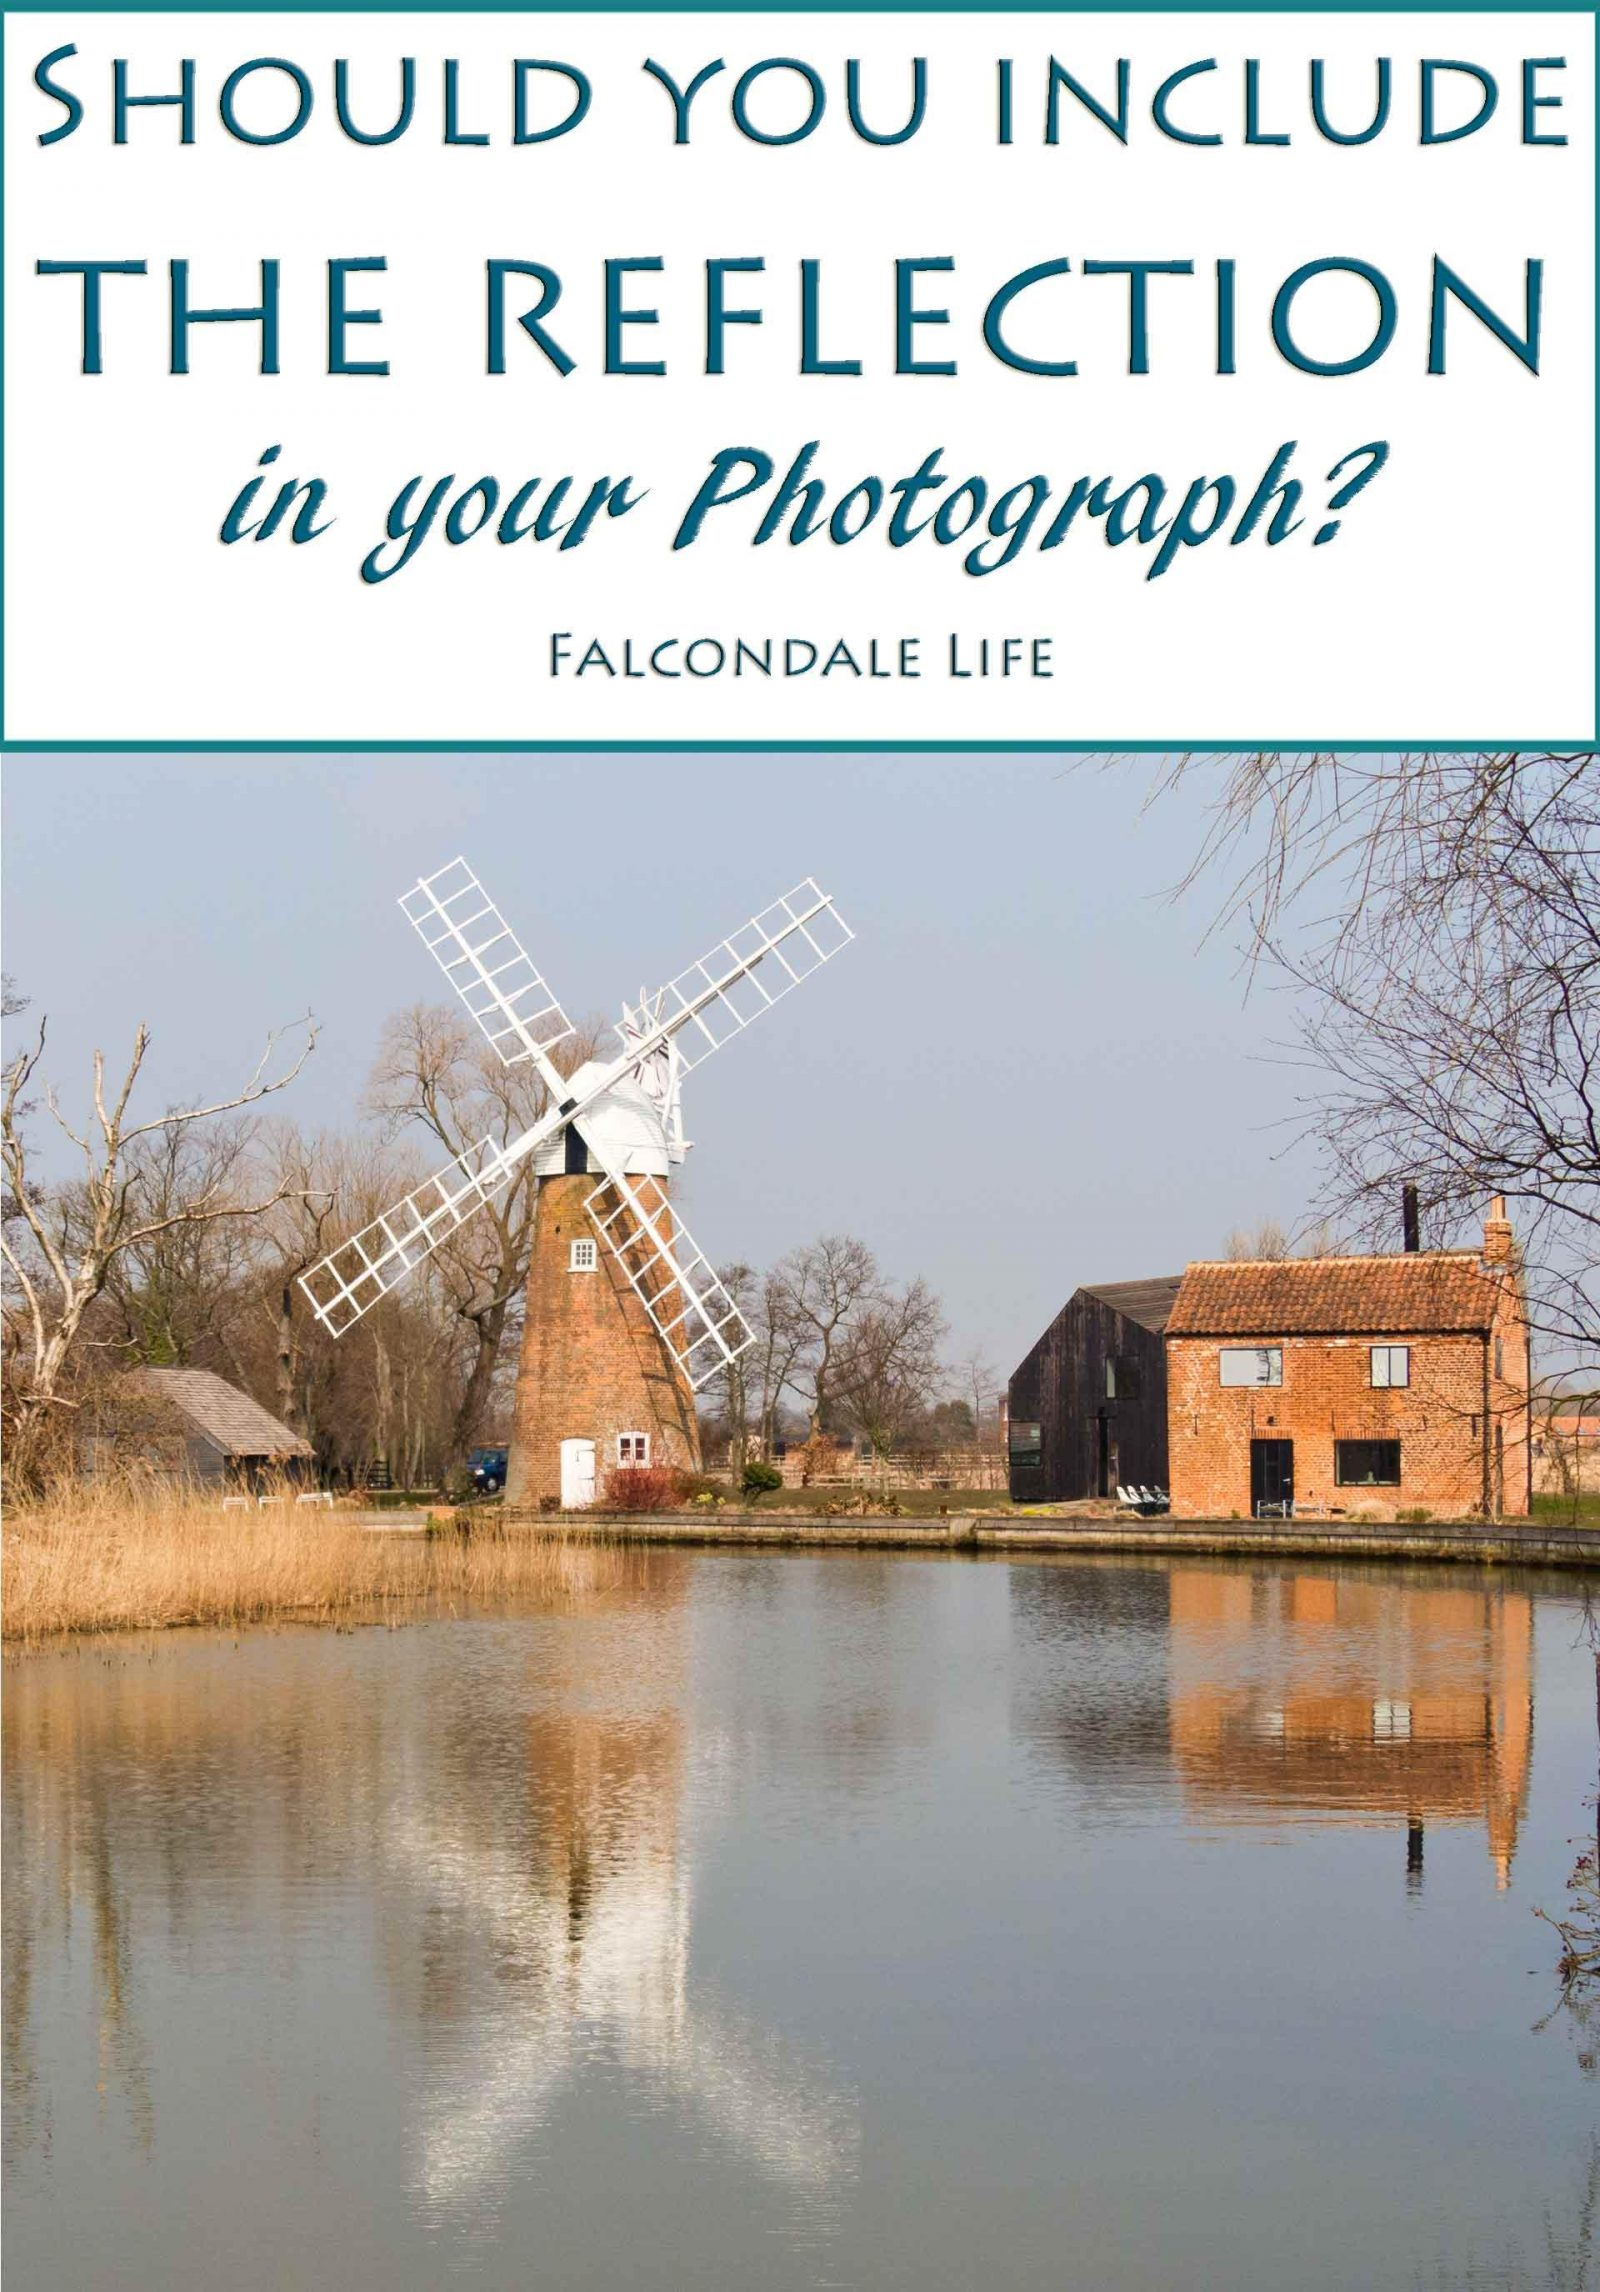 Should you include the reflection in your photograph? On Falcondale Life blog. When you are taking a photo which could have a reflection in it, don't accidentally miss it or crop it out. Make an informed decision about using reflections in your pictures. Historic windmill by the water.